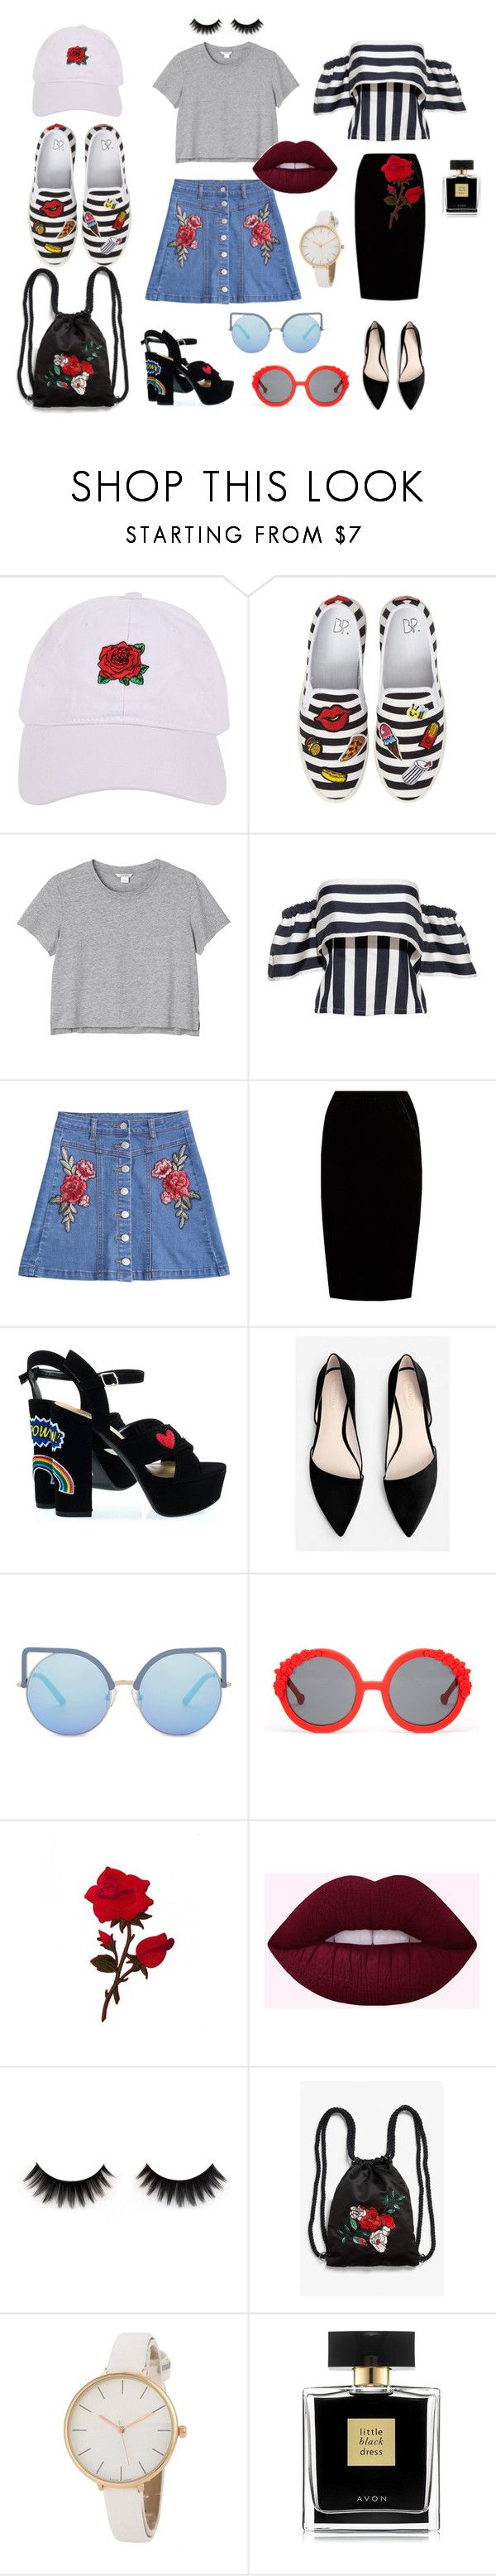 """ROSE ROSE ROSE RED set"" by sweetlittlebunny on Polyvore featuring moda, Armitage Avenue, BP., Monki, Jupe By Jackie, MANGO, Matthew Williamson, Preen i Avon"